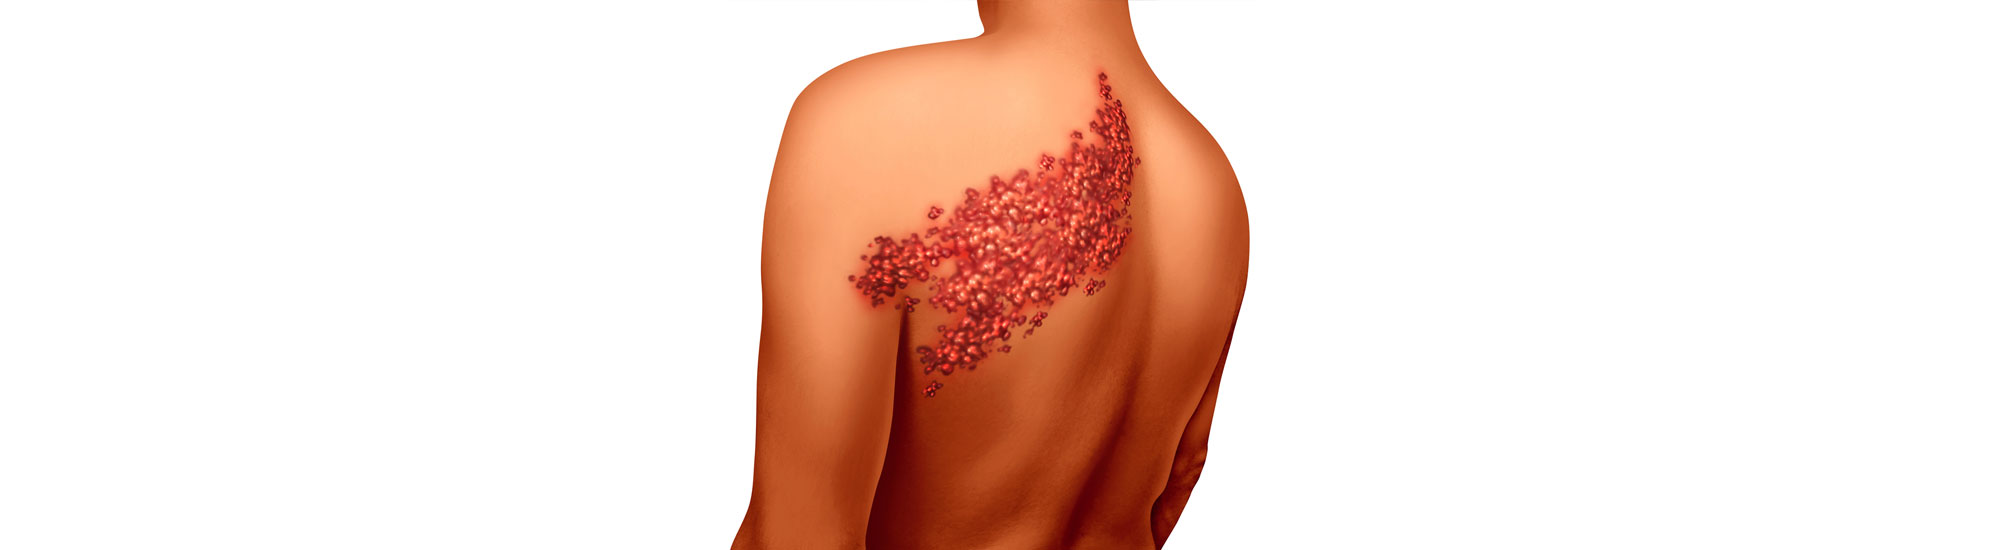 Ayurvedic treatment for Shingles